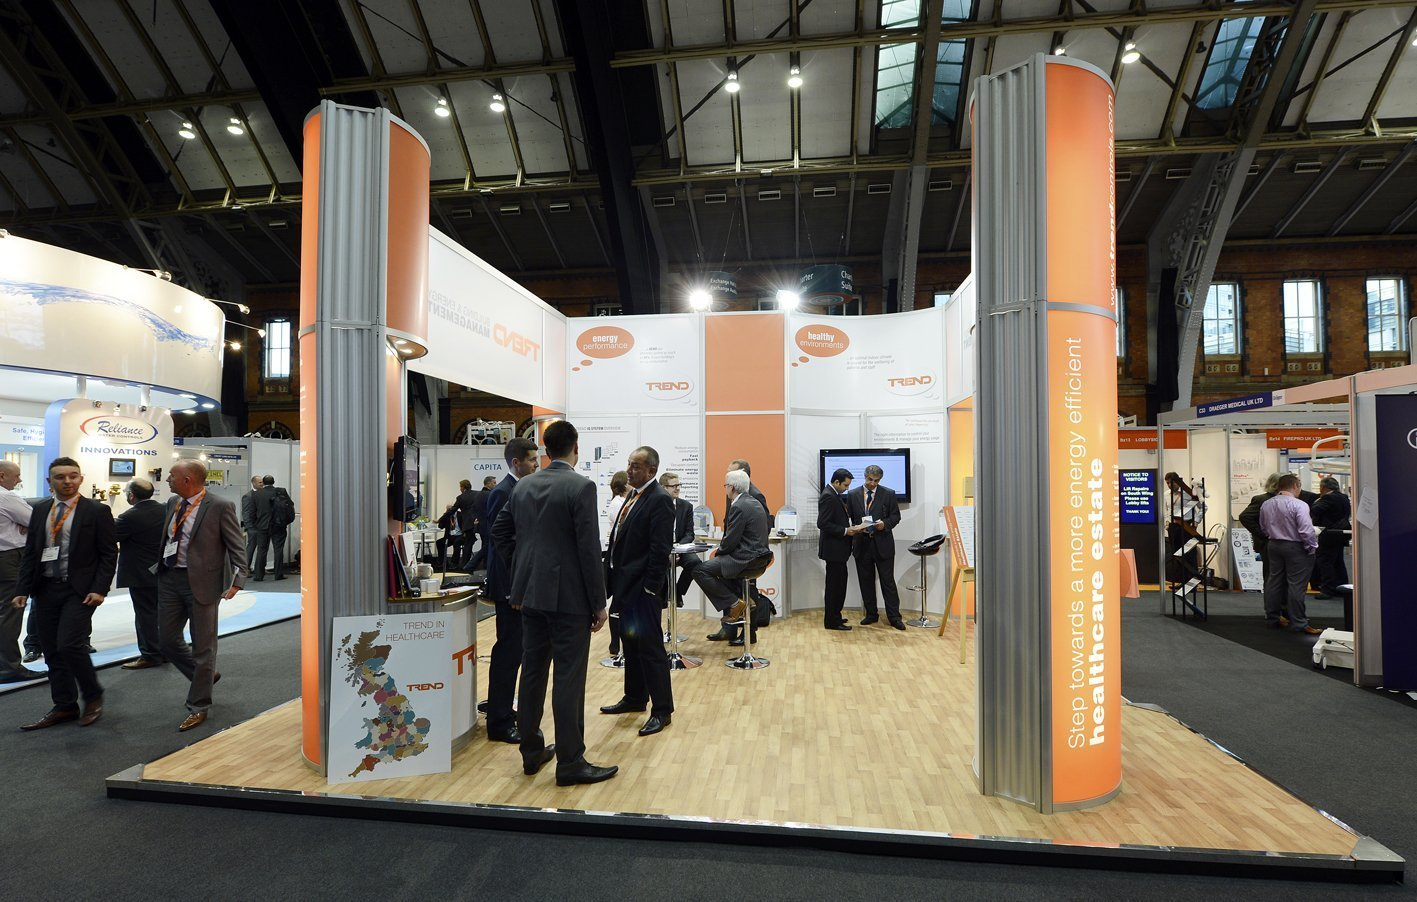 Sustainability is the priority at this year's Healthcare Estates Exhibition